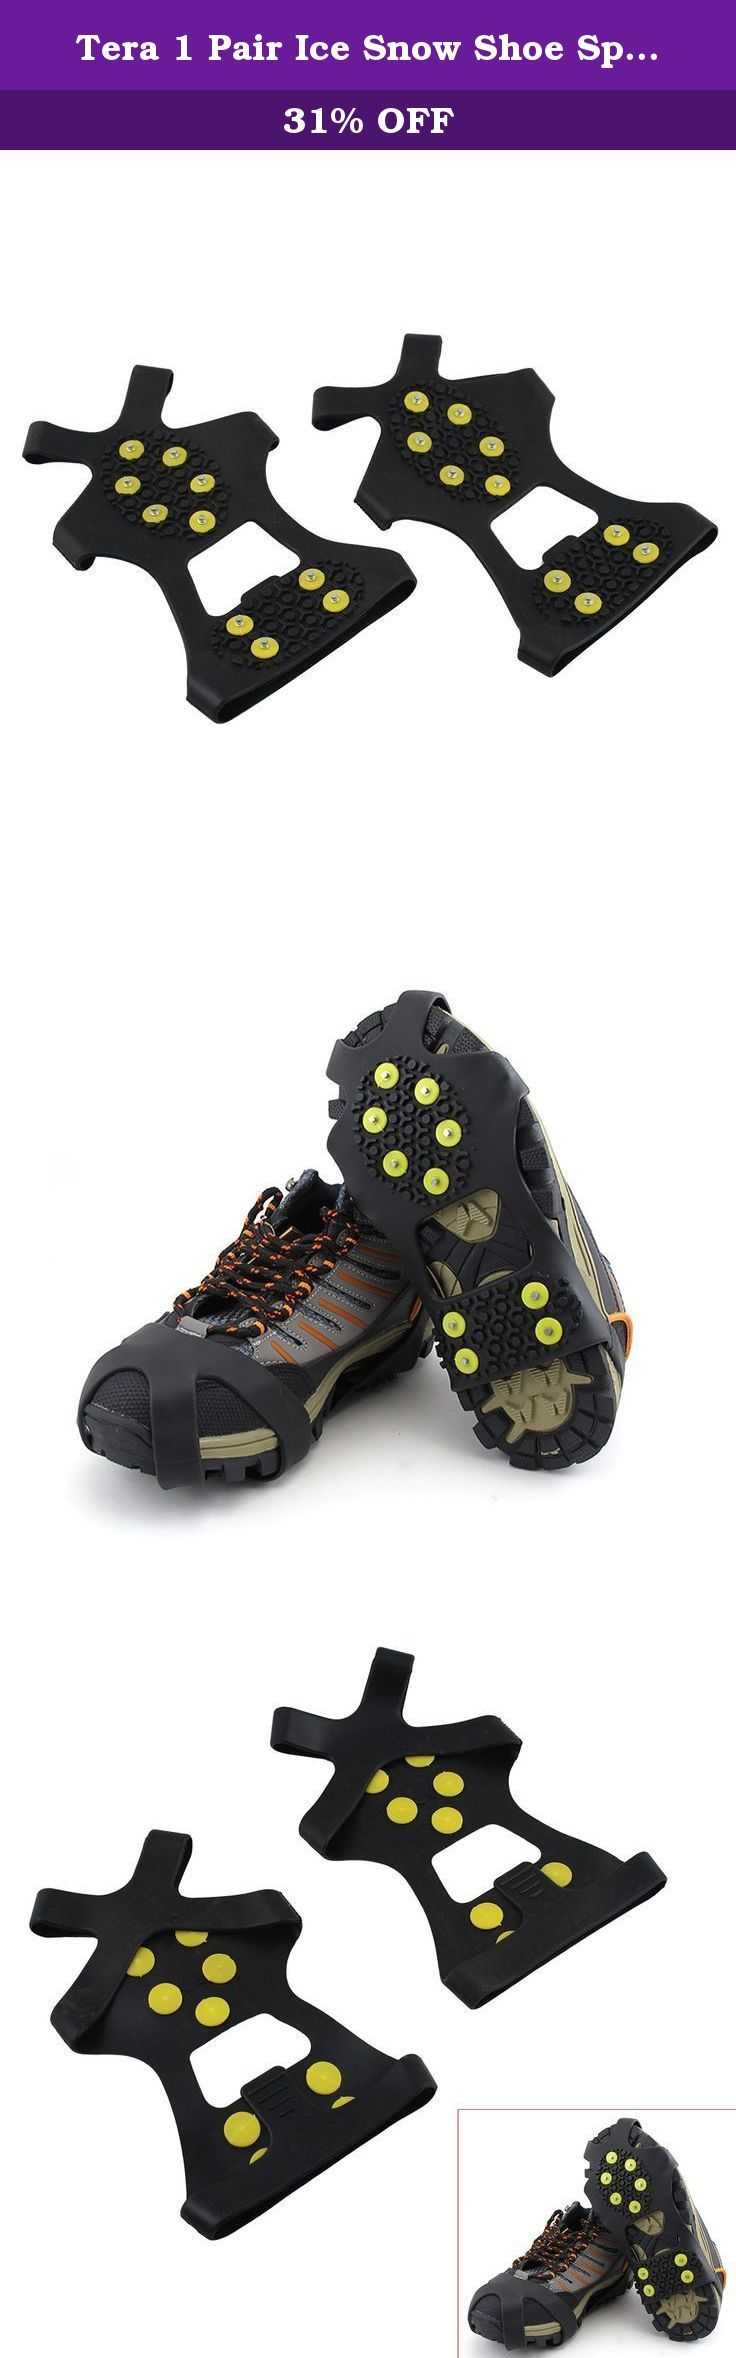 Tera 1 Pair Ice Snow Shoe Spikes Grips Crampons Cleats Anti Slip 10-Teeth for Hiking Climbing XL. 1 Pair Ice Snow Shoe Spikes This non slip shoe cover is designed for walking on snow and ice ground. Made of high-quality thermoplastic elastomer, it is a requisite companion to protect you in winter. We offer customers reasonable price, multiple and economic shipping modes, high-quality, professional and faithful after-sales service. Our aim is that try our best to satisfy our customers, so...